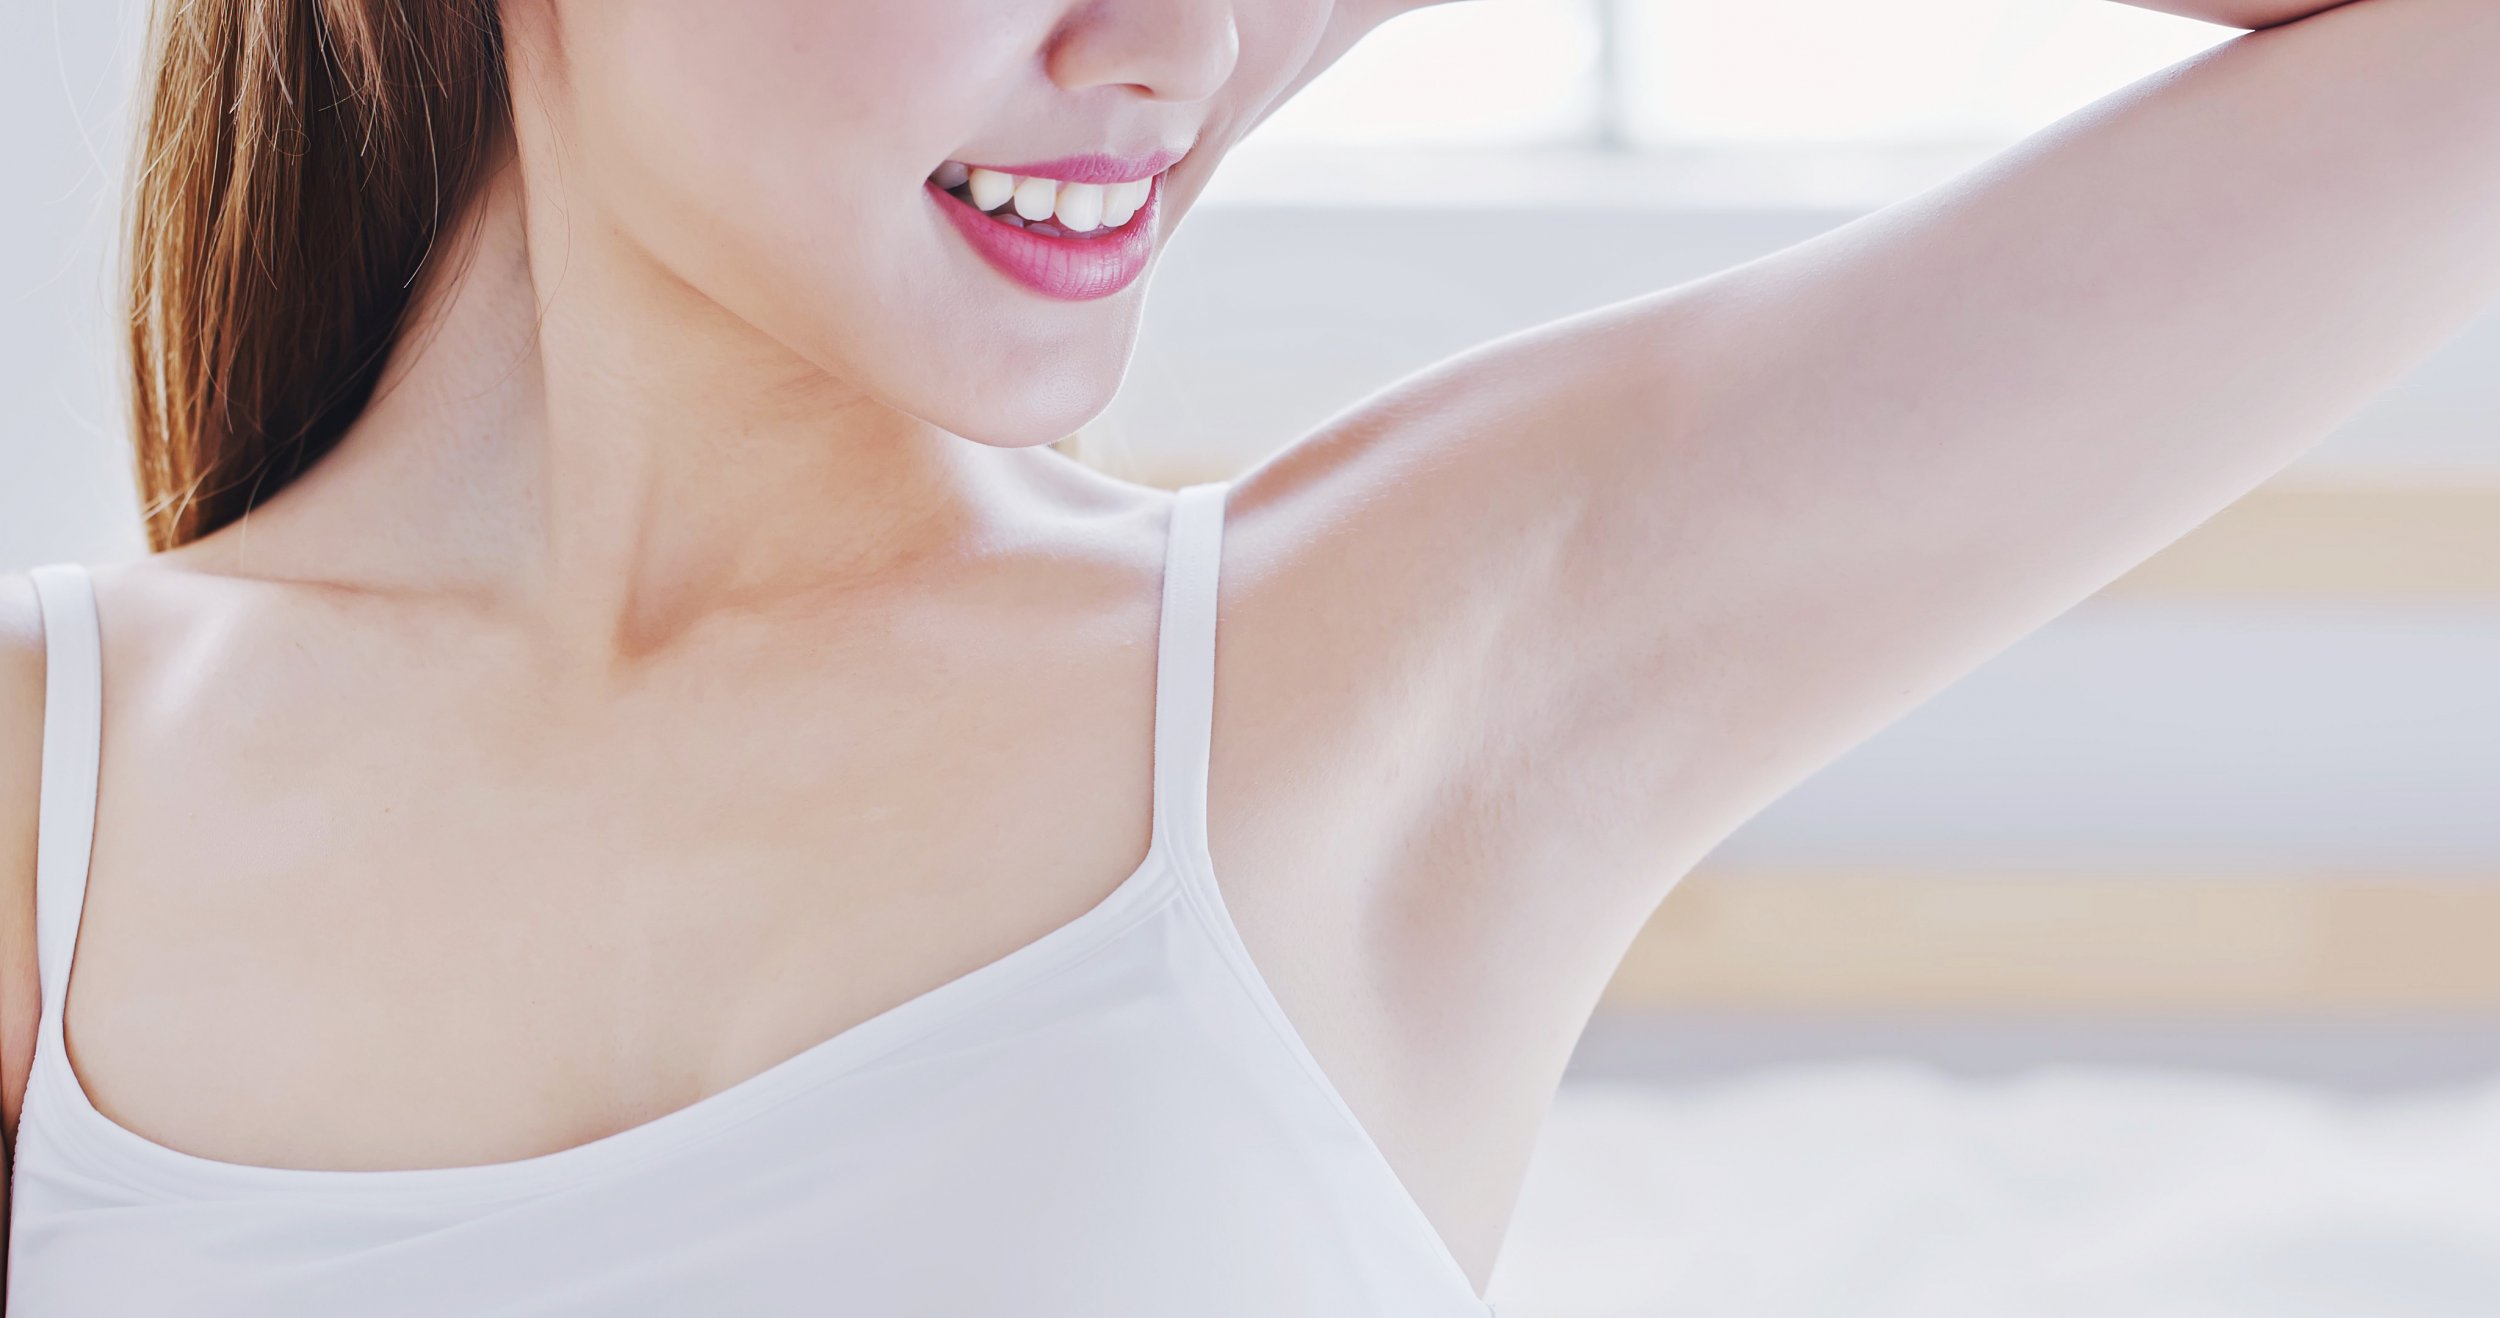 Armpit Sniffing Study Reveals That the Most Fertile Women Smell Best to Men